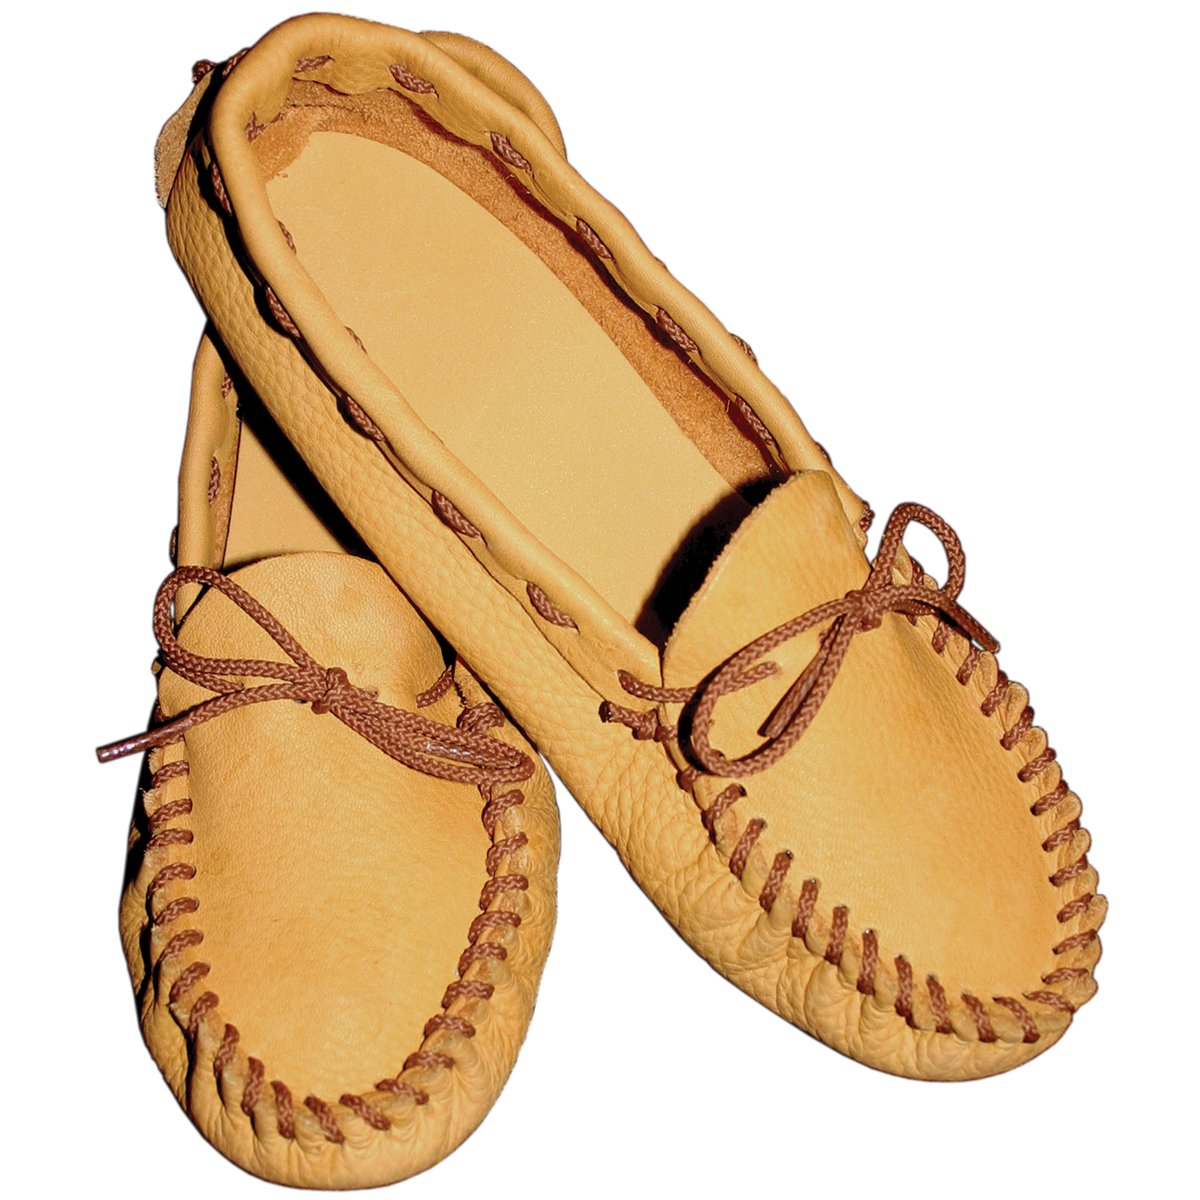 Realeather Crafts Leather Kit, 12/13-Size, Scout Moccasin C4604-05